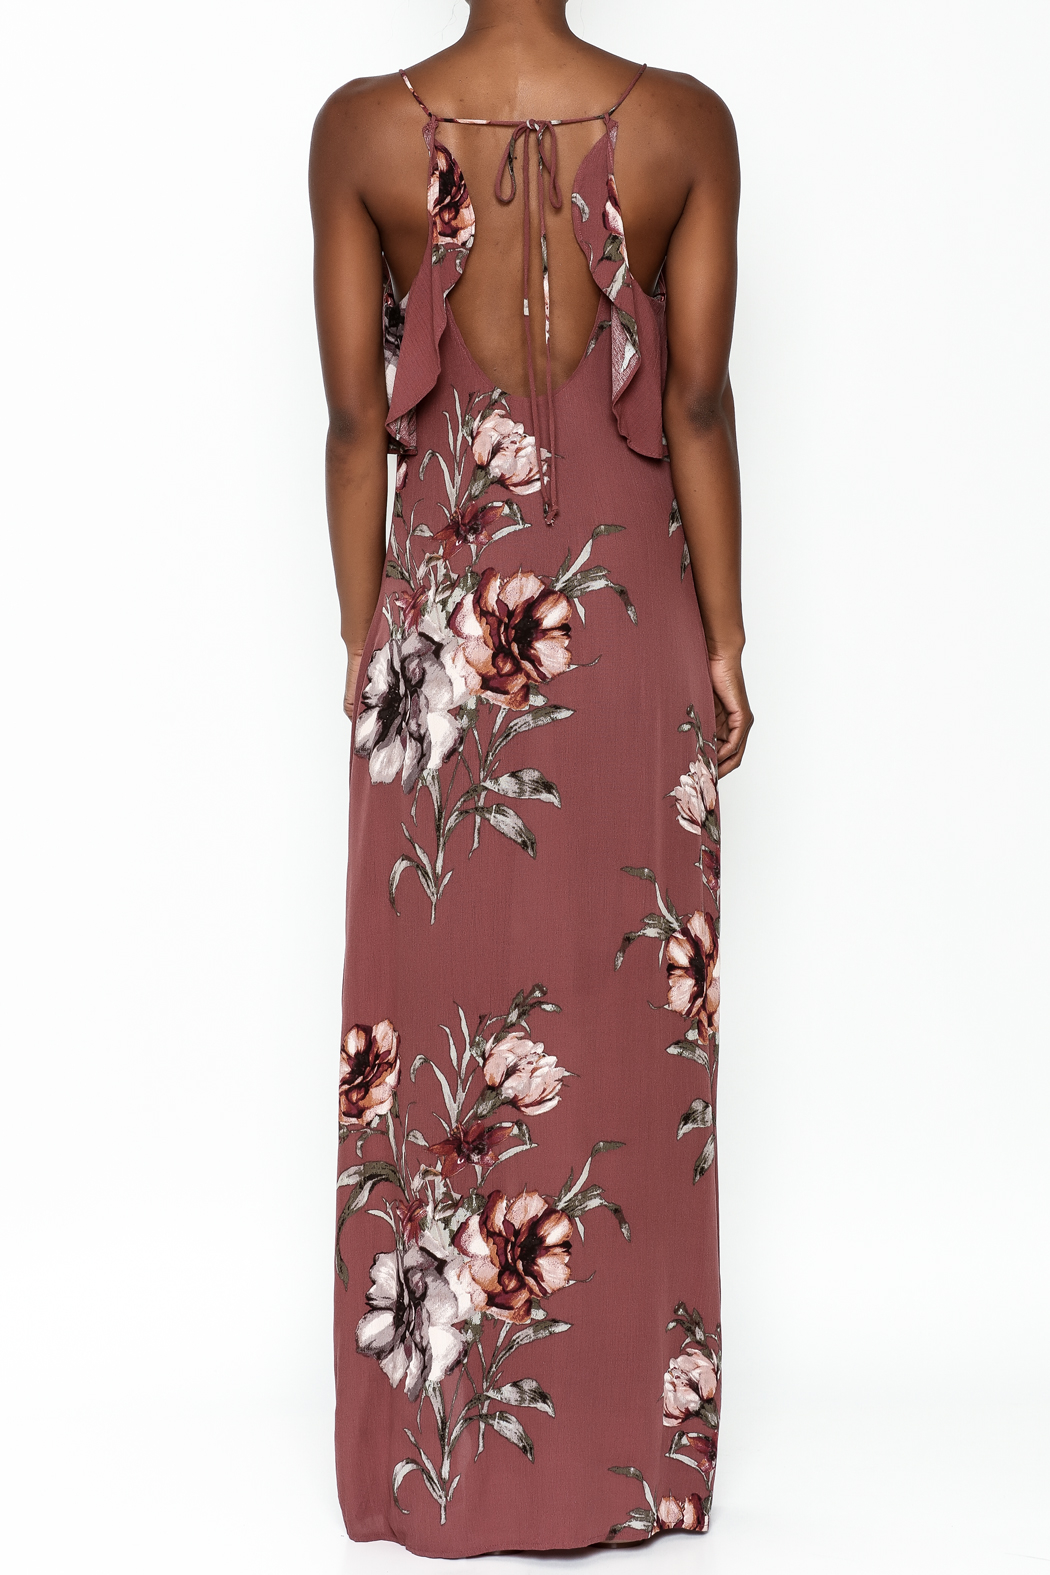 y&i clothing boutique Blush Floral Maxi Dress - Back Cropped Image